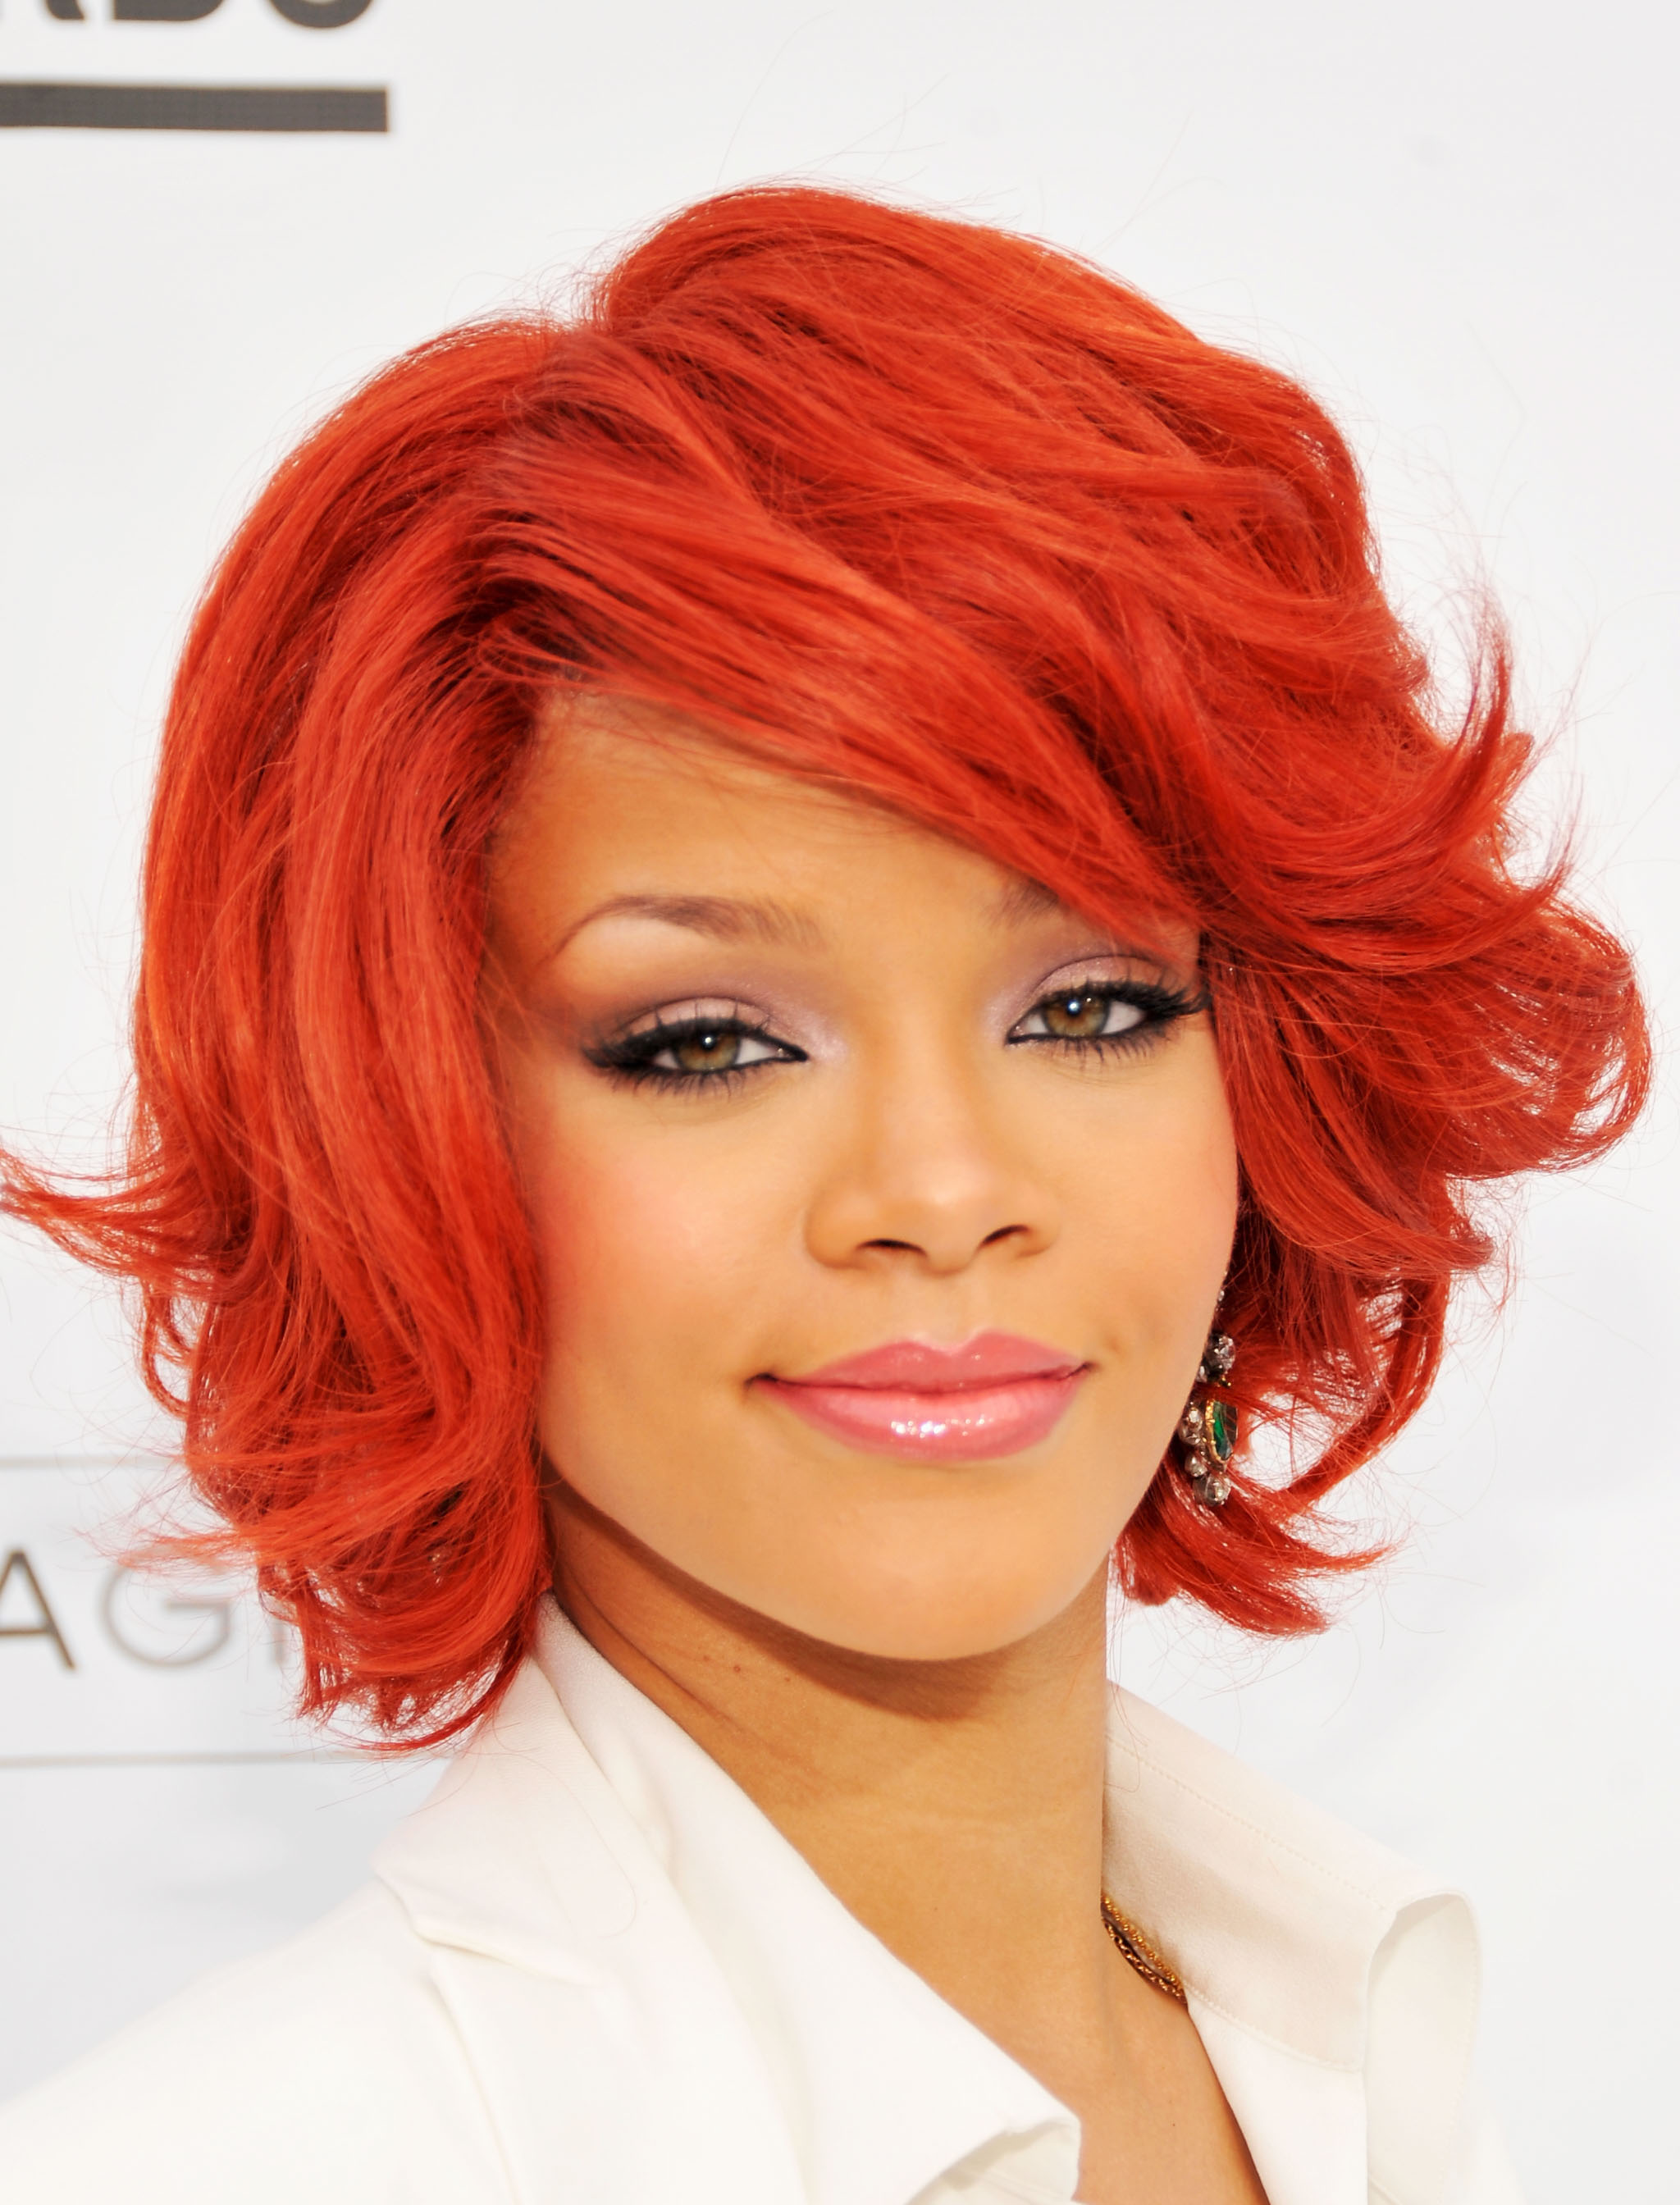 rihanna hair style rihanna photo 2048 of 7563 pics wallpaper photo 381250 6140